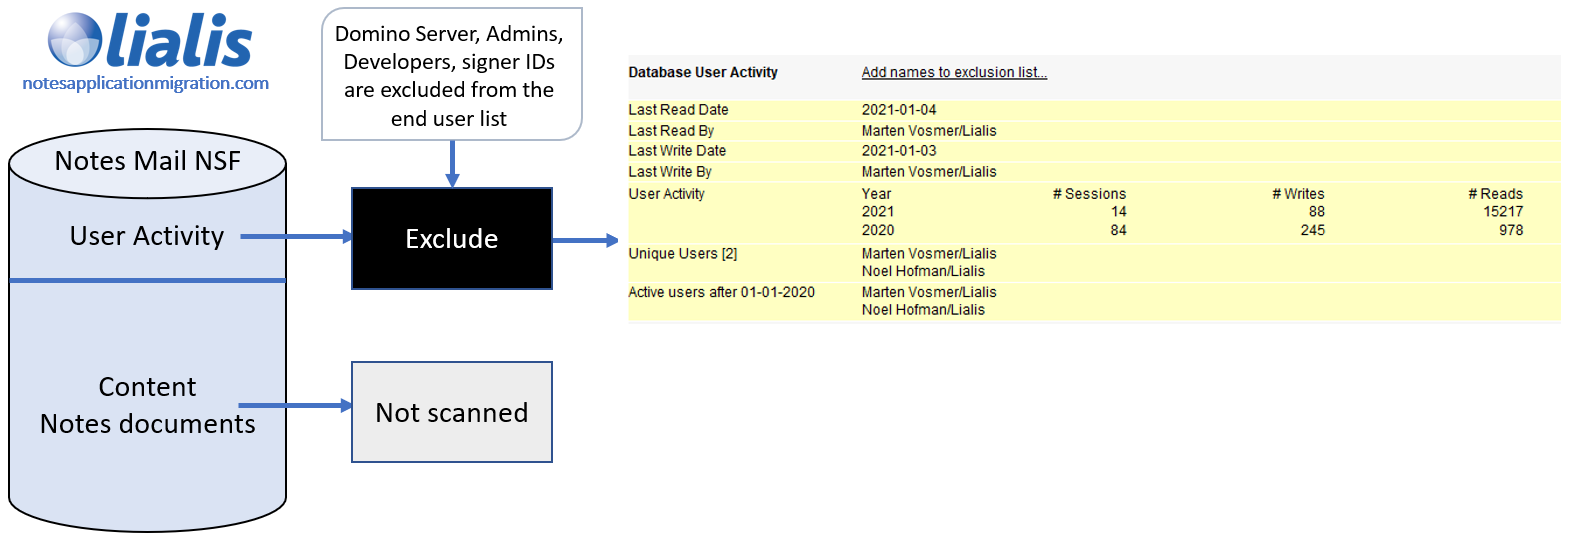 lotus mail scanner exclude option